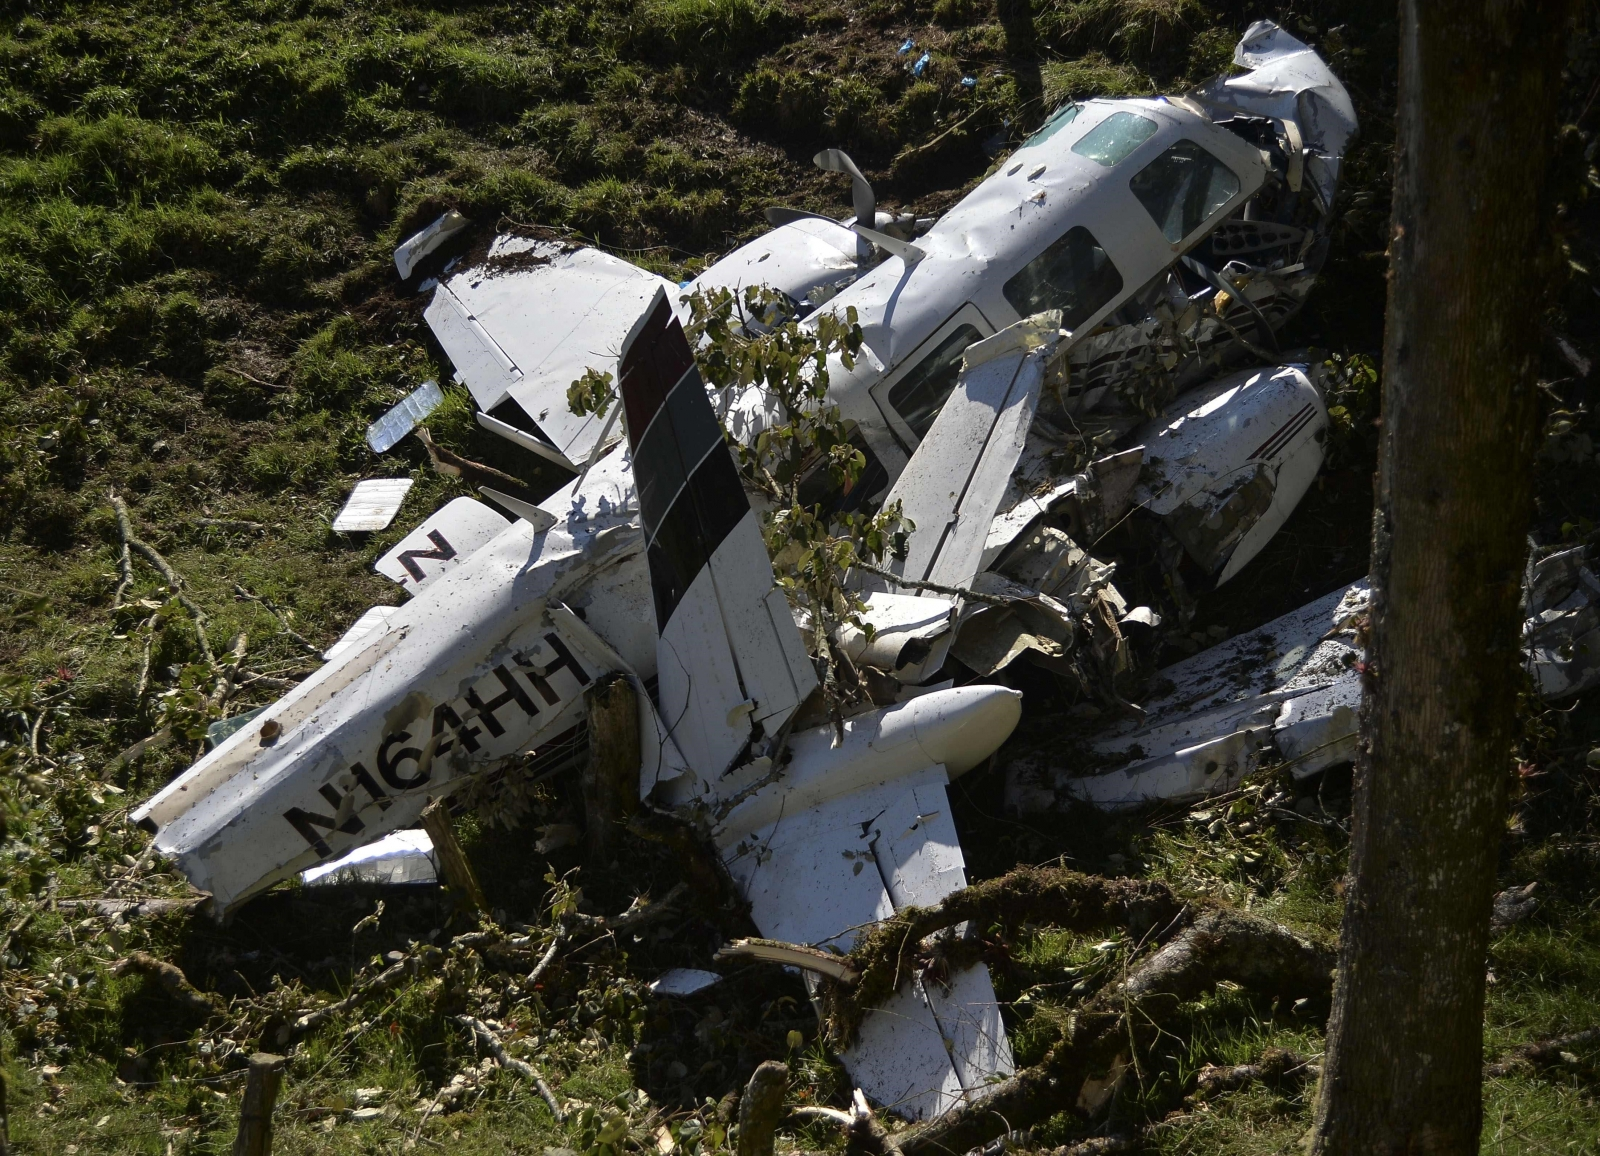 Chapecoense plane crash: Pilot's last words reveal plane ran out of fuel during emergency landing attempt